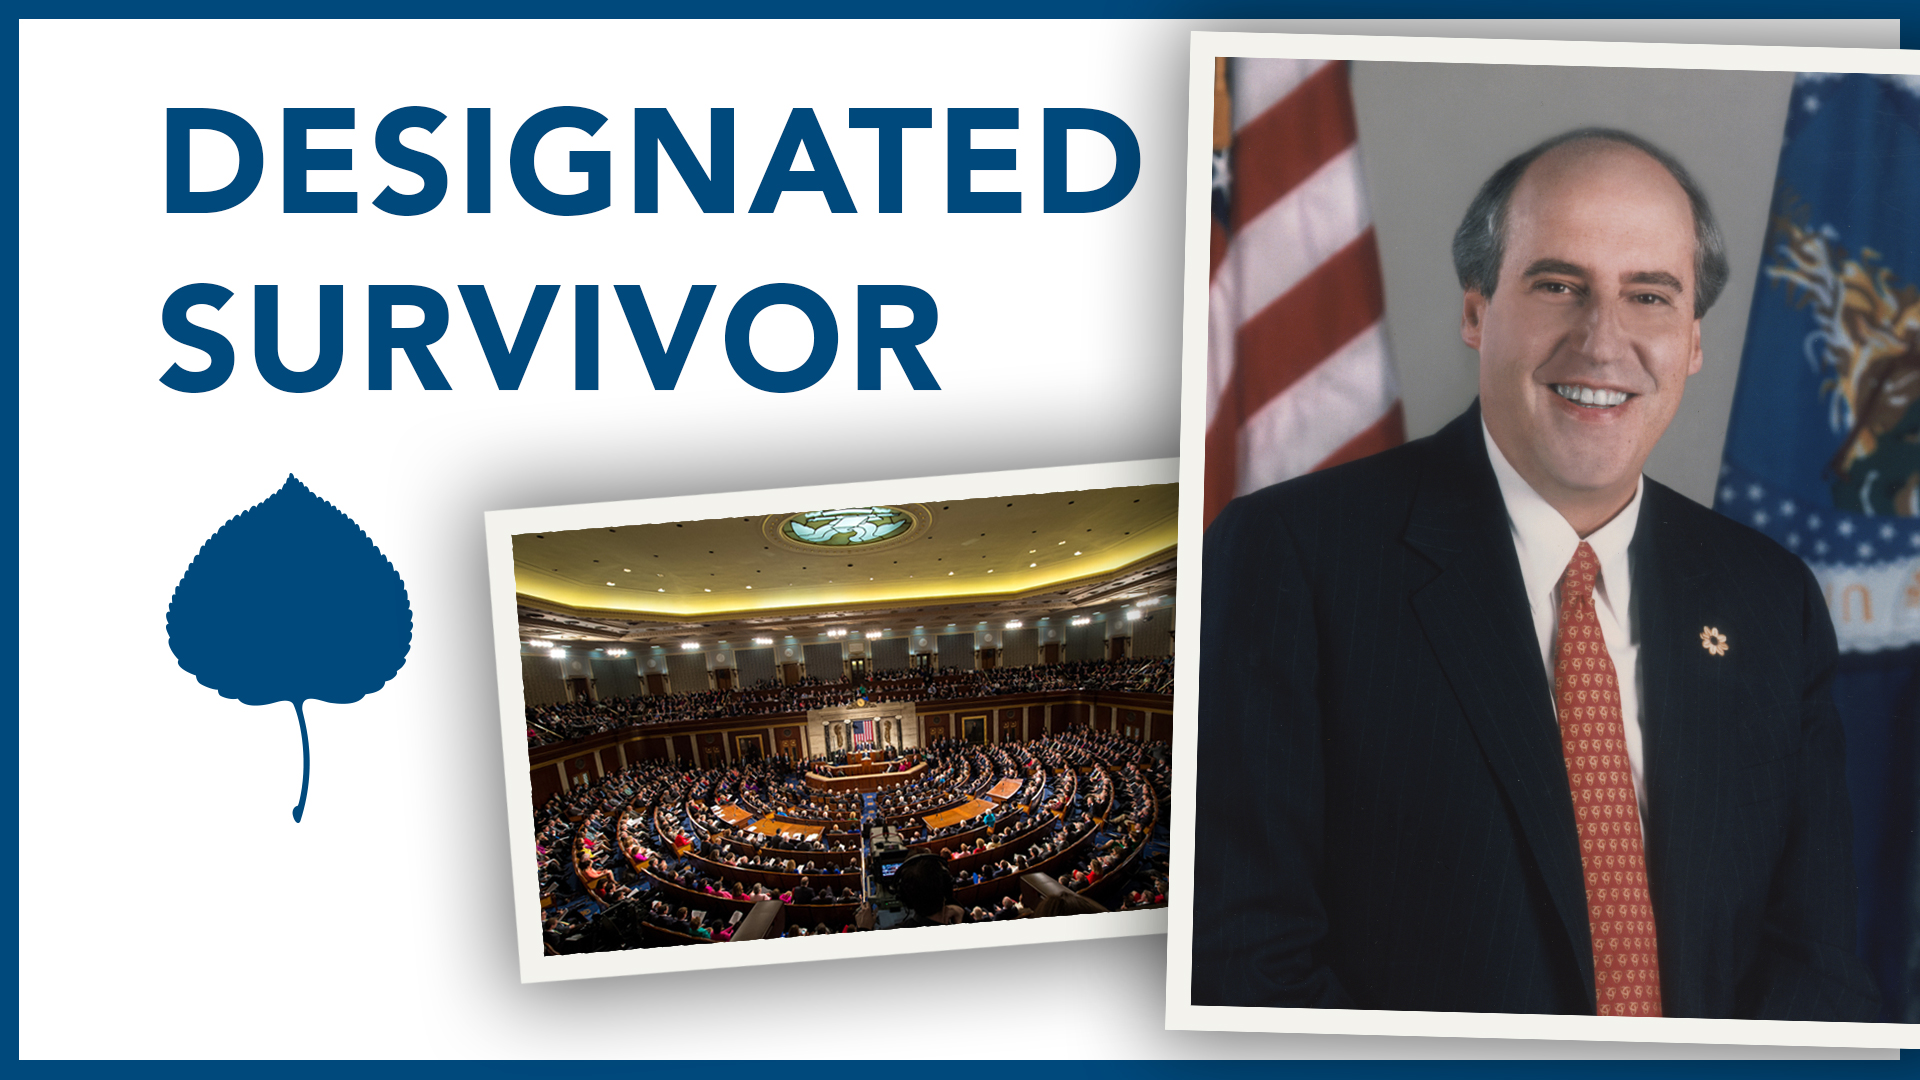 Designated Survivor for the State of the Union Address